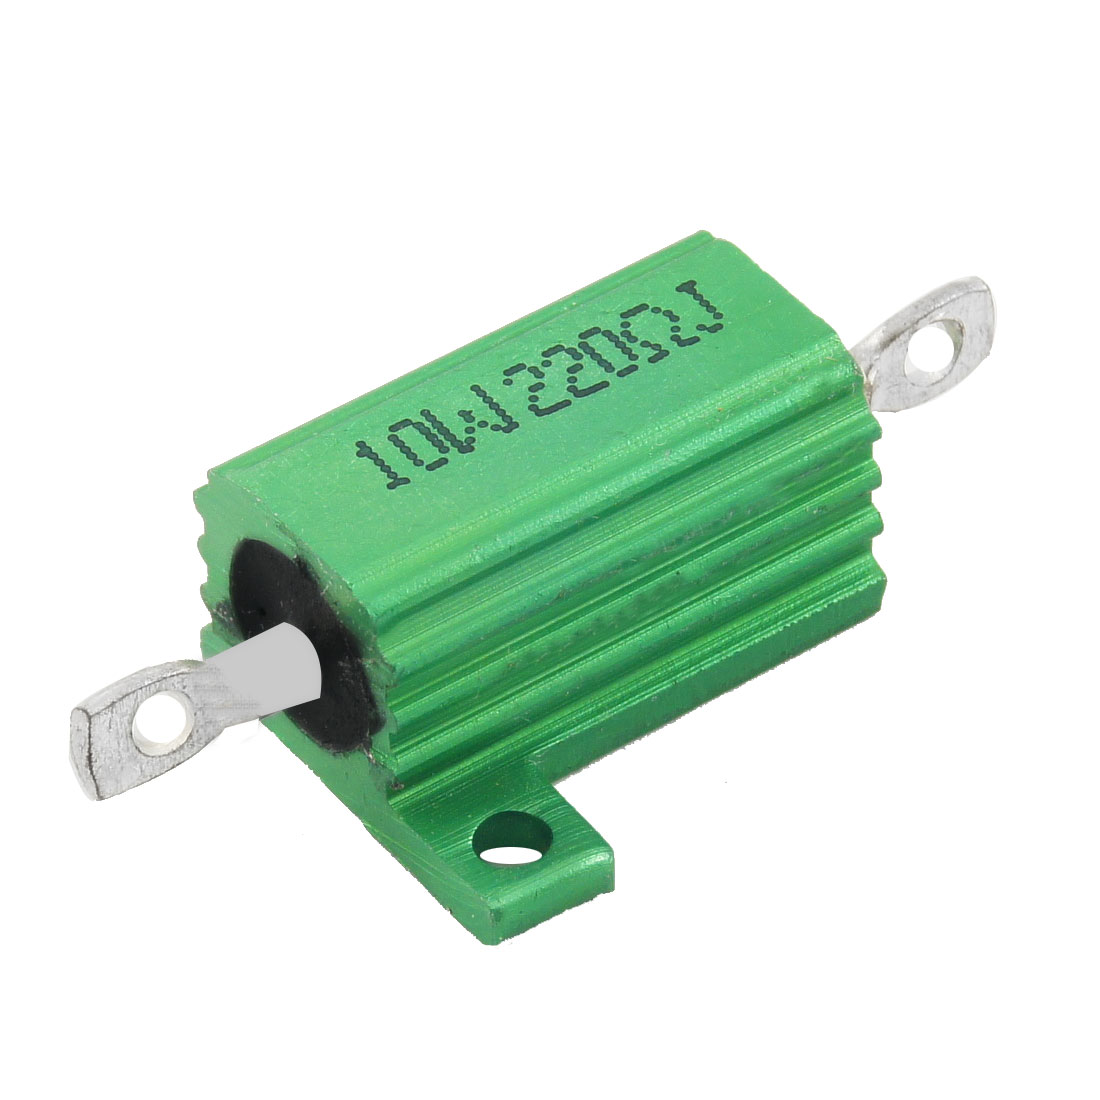 Green 10 Watt 220 Ohm 5% Aluminum Shell Wire Wound Resistor